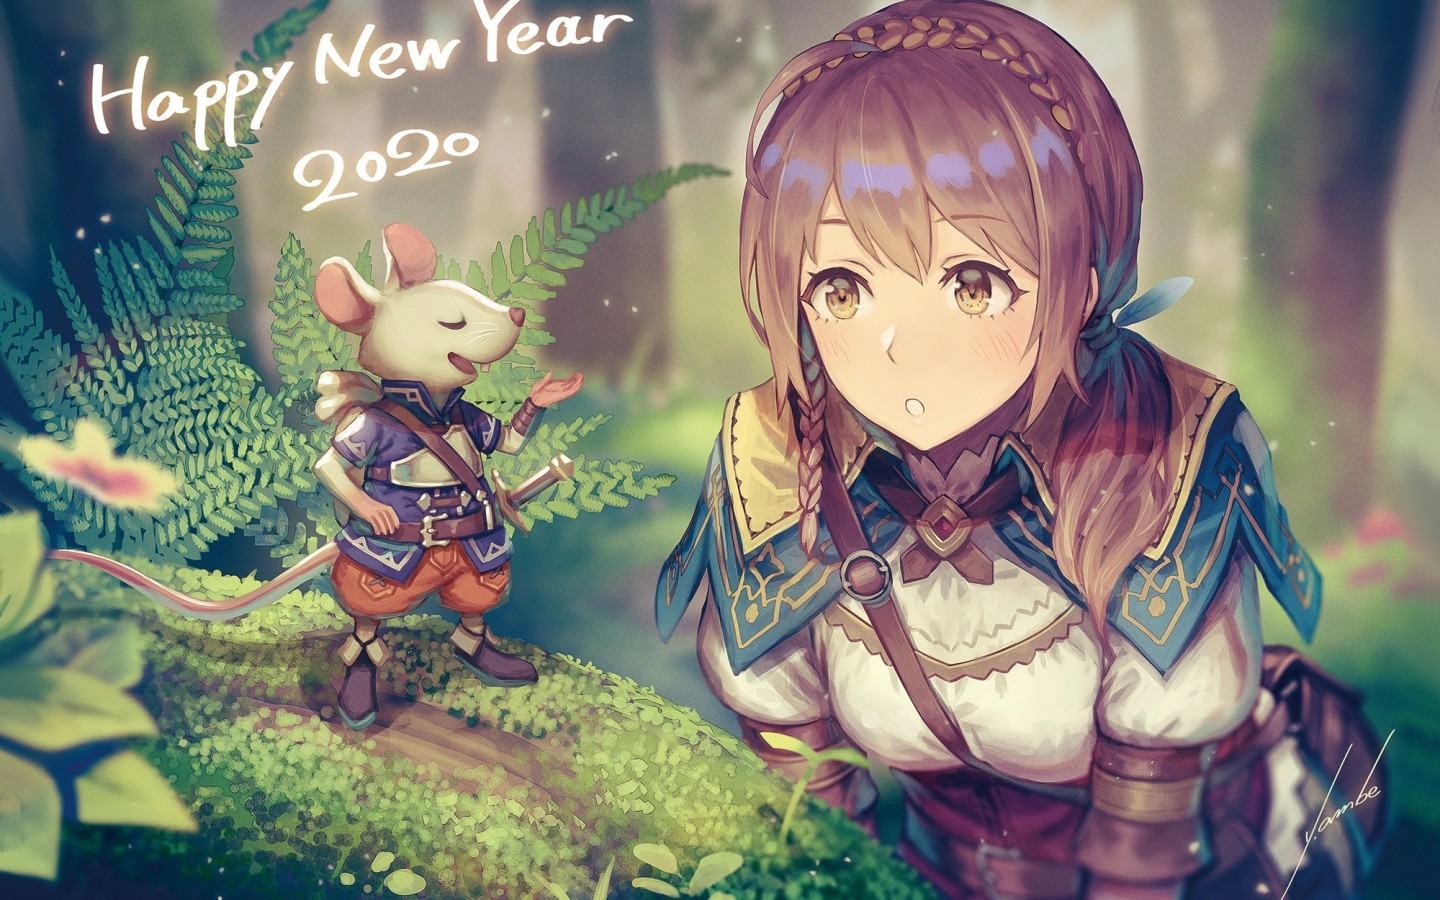 Download 1440x900 Anime Girl Adventurer Forest Light Armor 1440x900